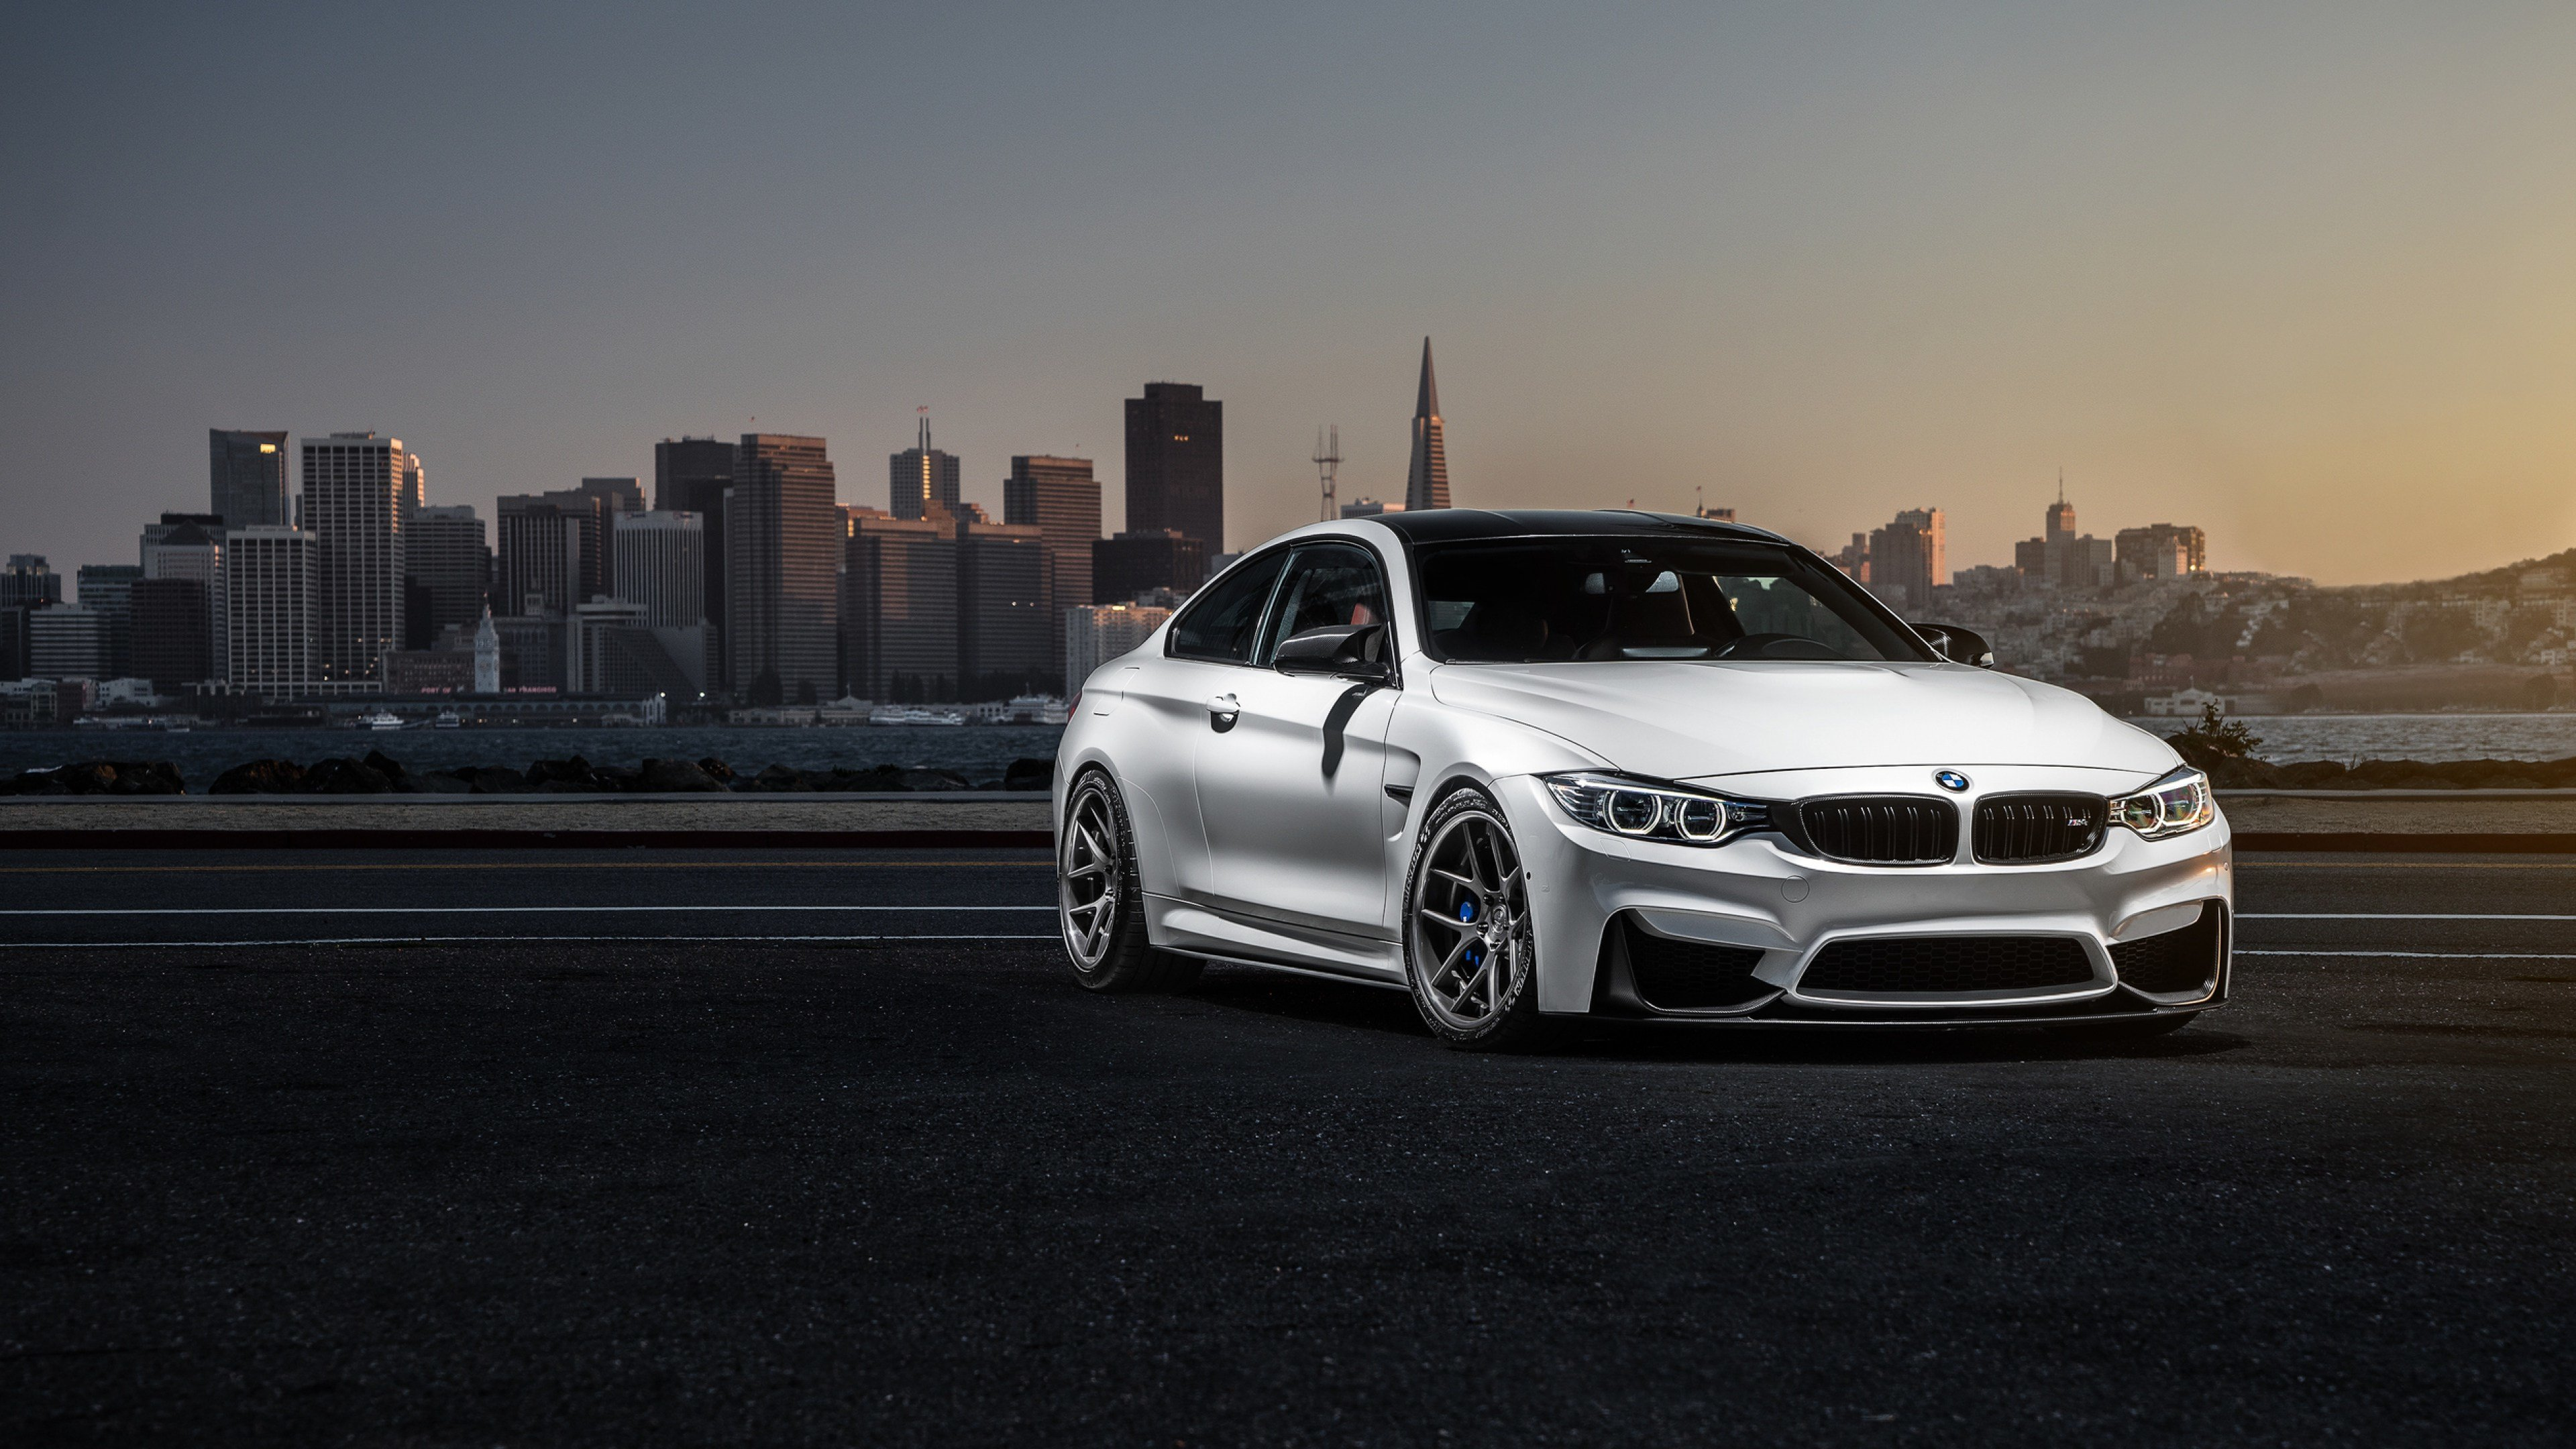 New Bmw M4 Hd Cars 4K Wallpapers Images Backgrounds On This Month